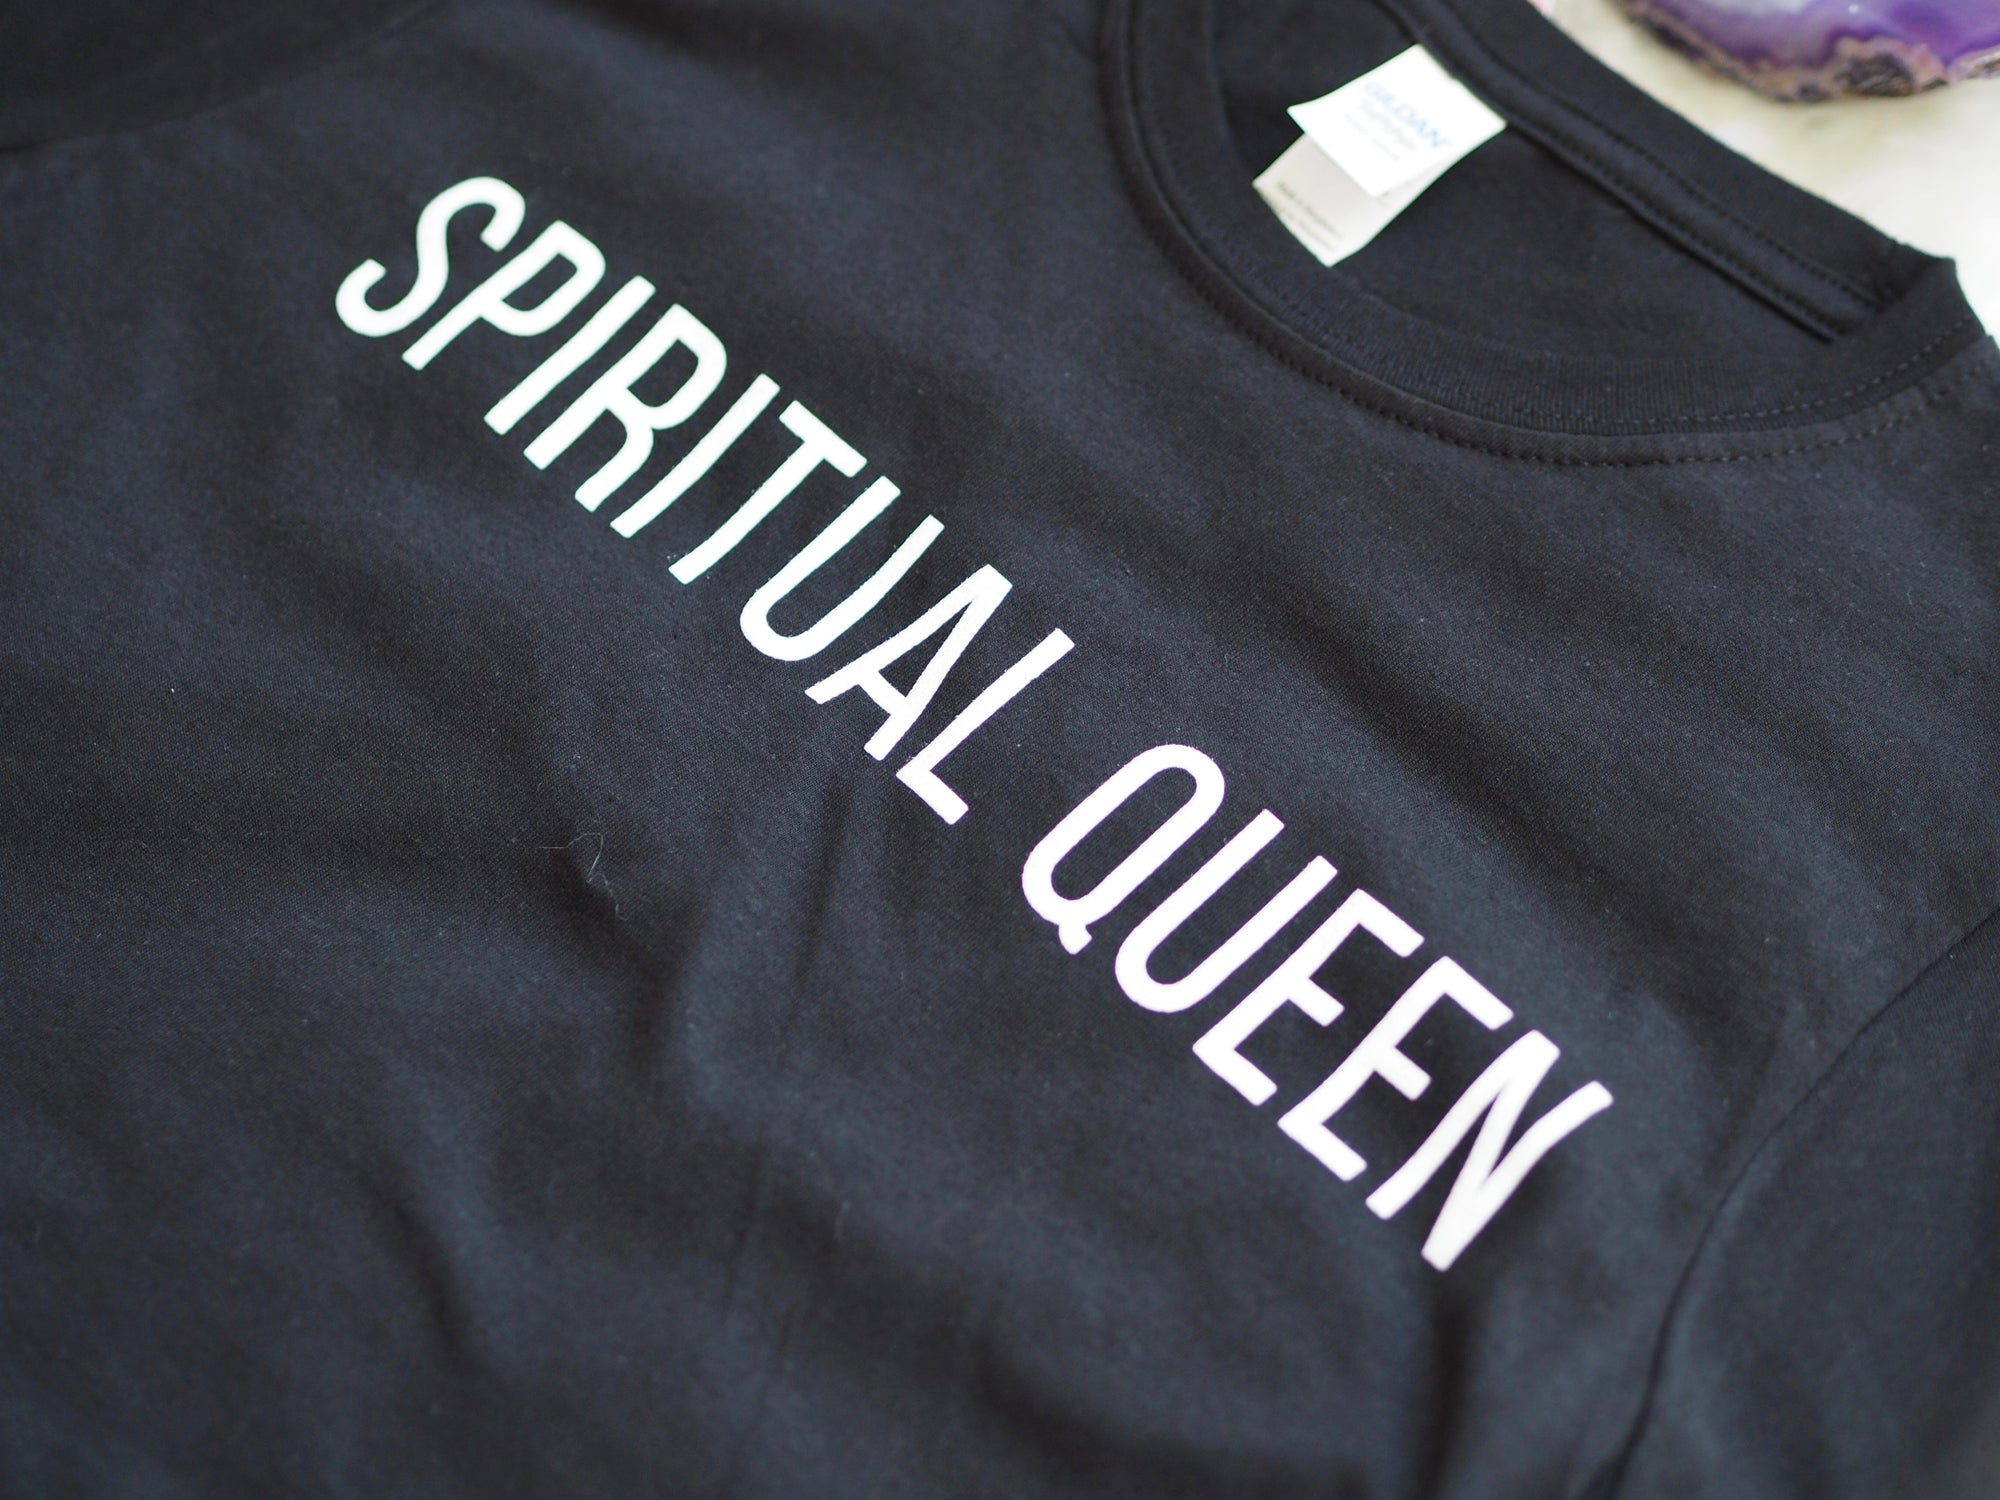 SPIRITUAL QUEEN LADIES T-SHIRT | EMMA MUMFORD